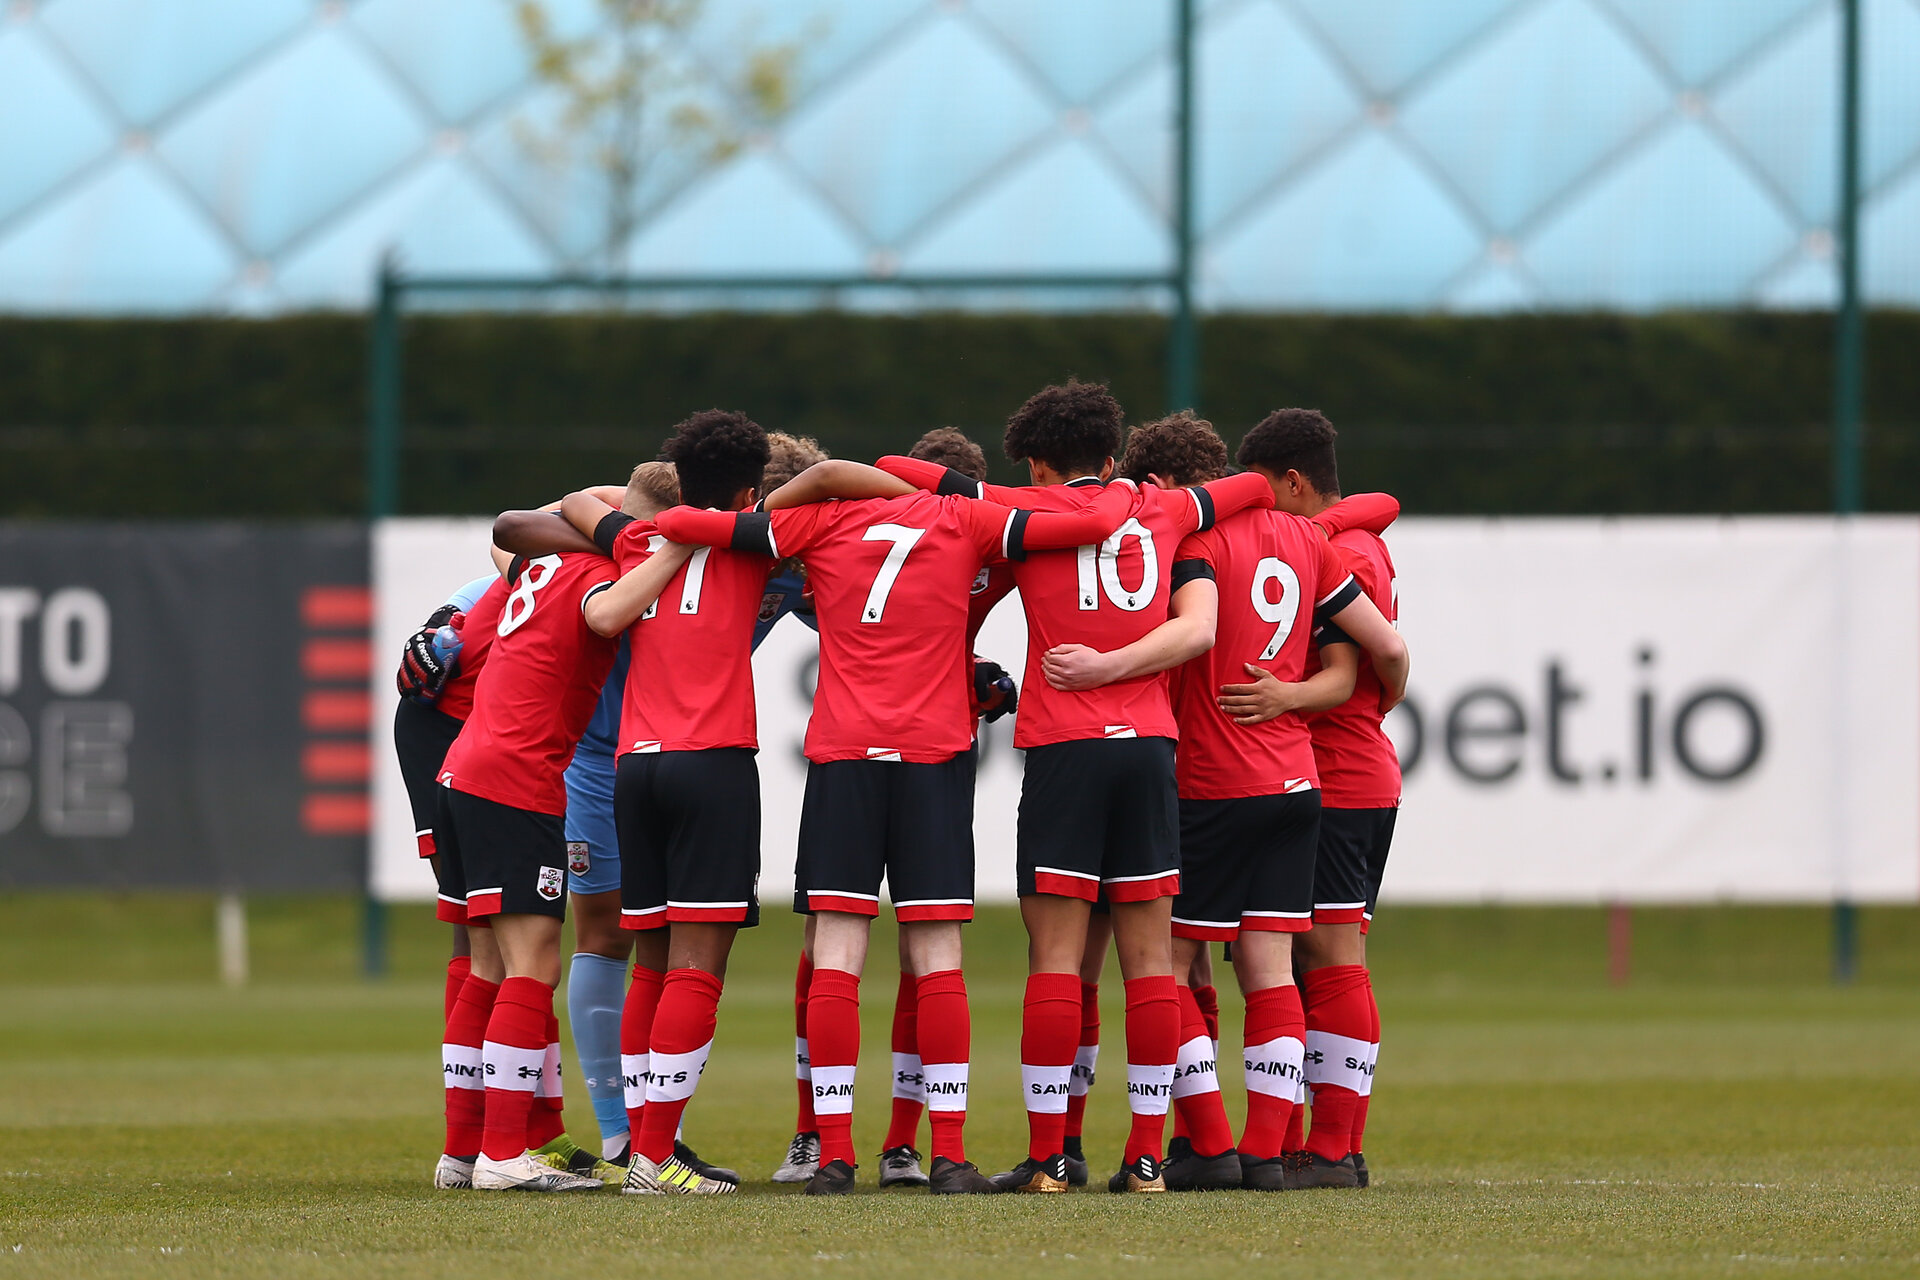 SOUTHAMPTON, ENGLAND - APRIL 10: Southampton players huddle ahead of the Premier League U18s match between Southampton U18 and Tottenham Hotspur at Staplewood Campus on April 10, 2021 in Southampton, England. (Photo by Isabelle Field/Southampton FC via Getty Images)